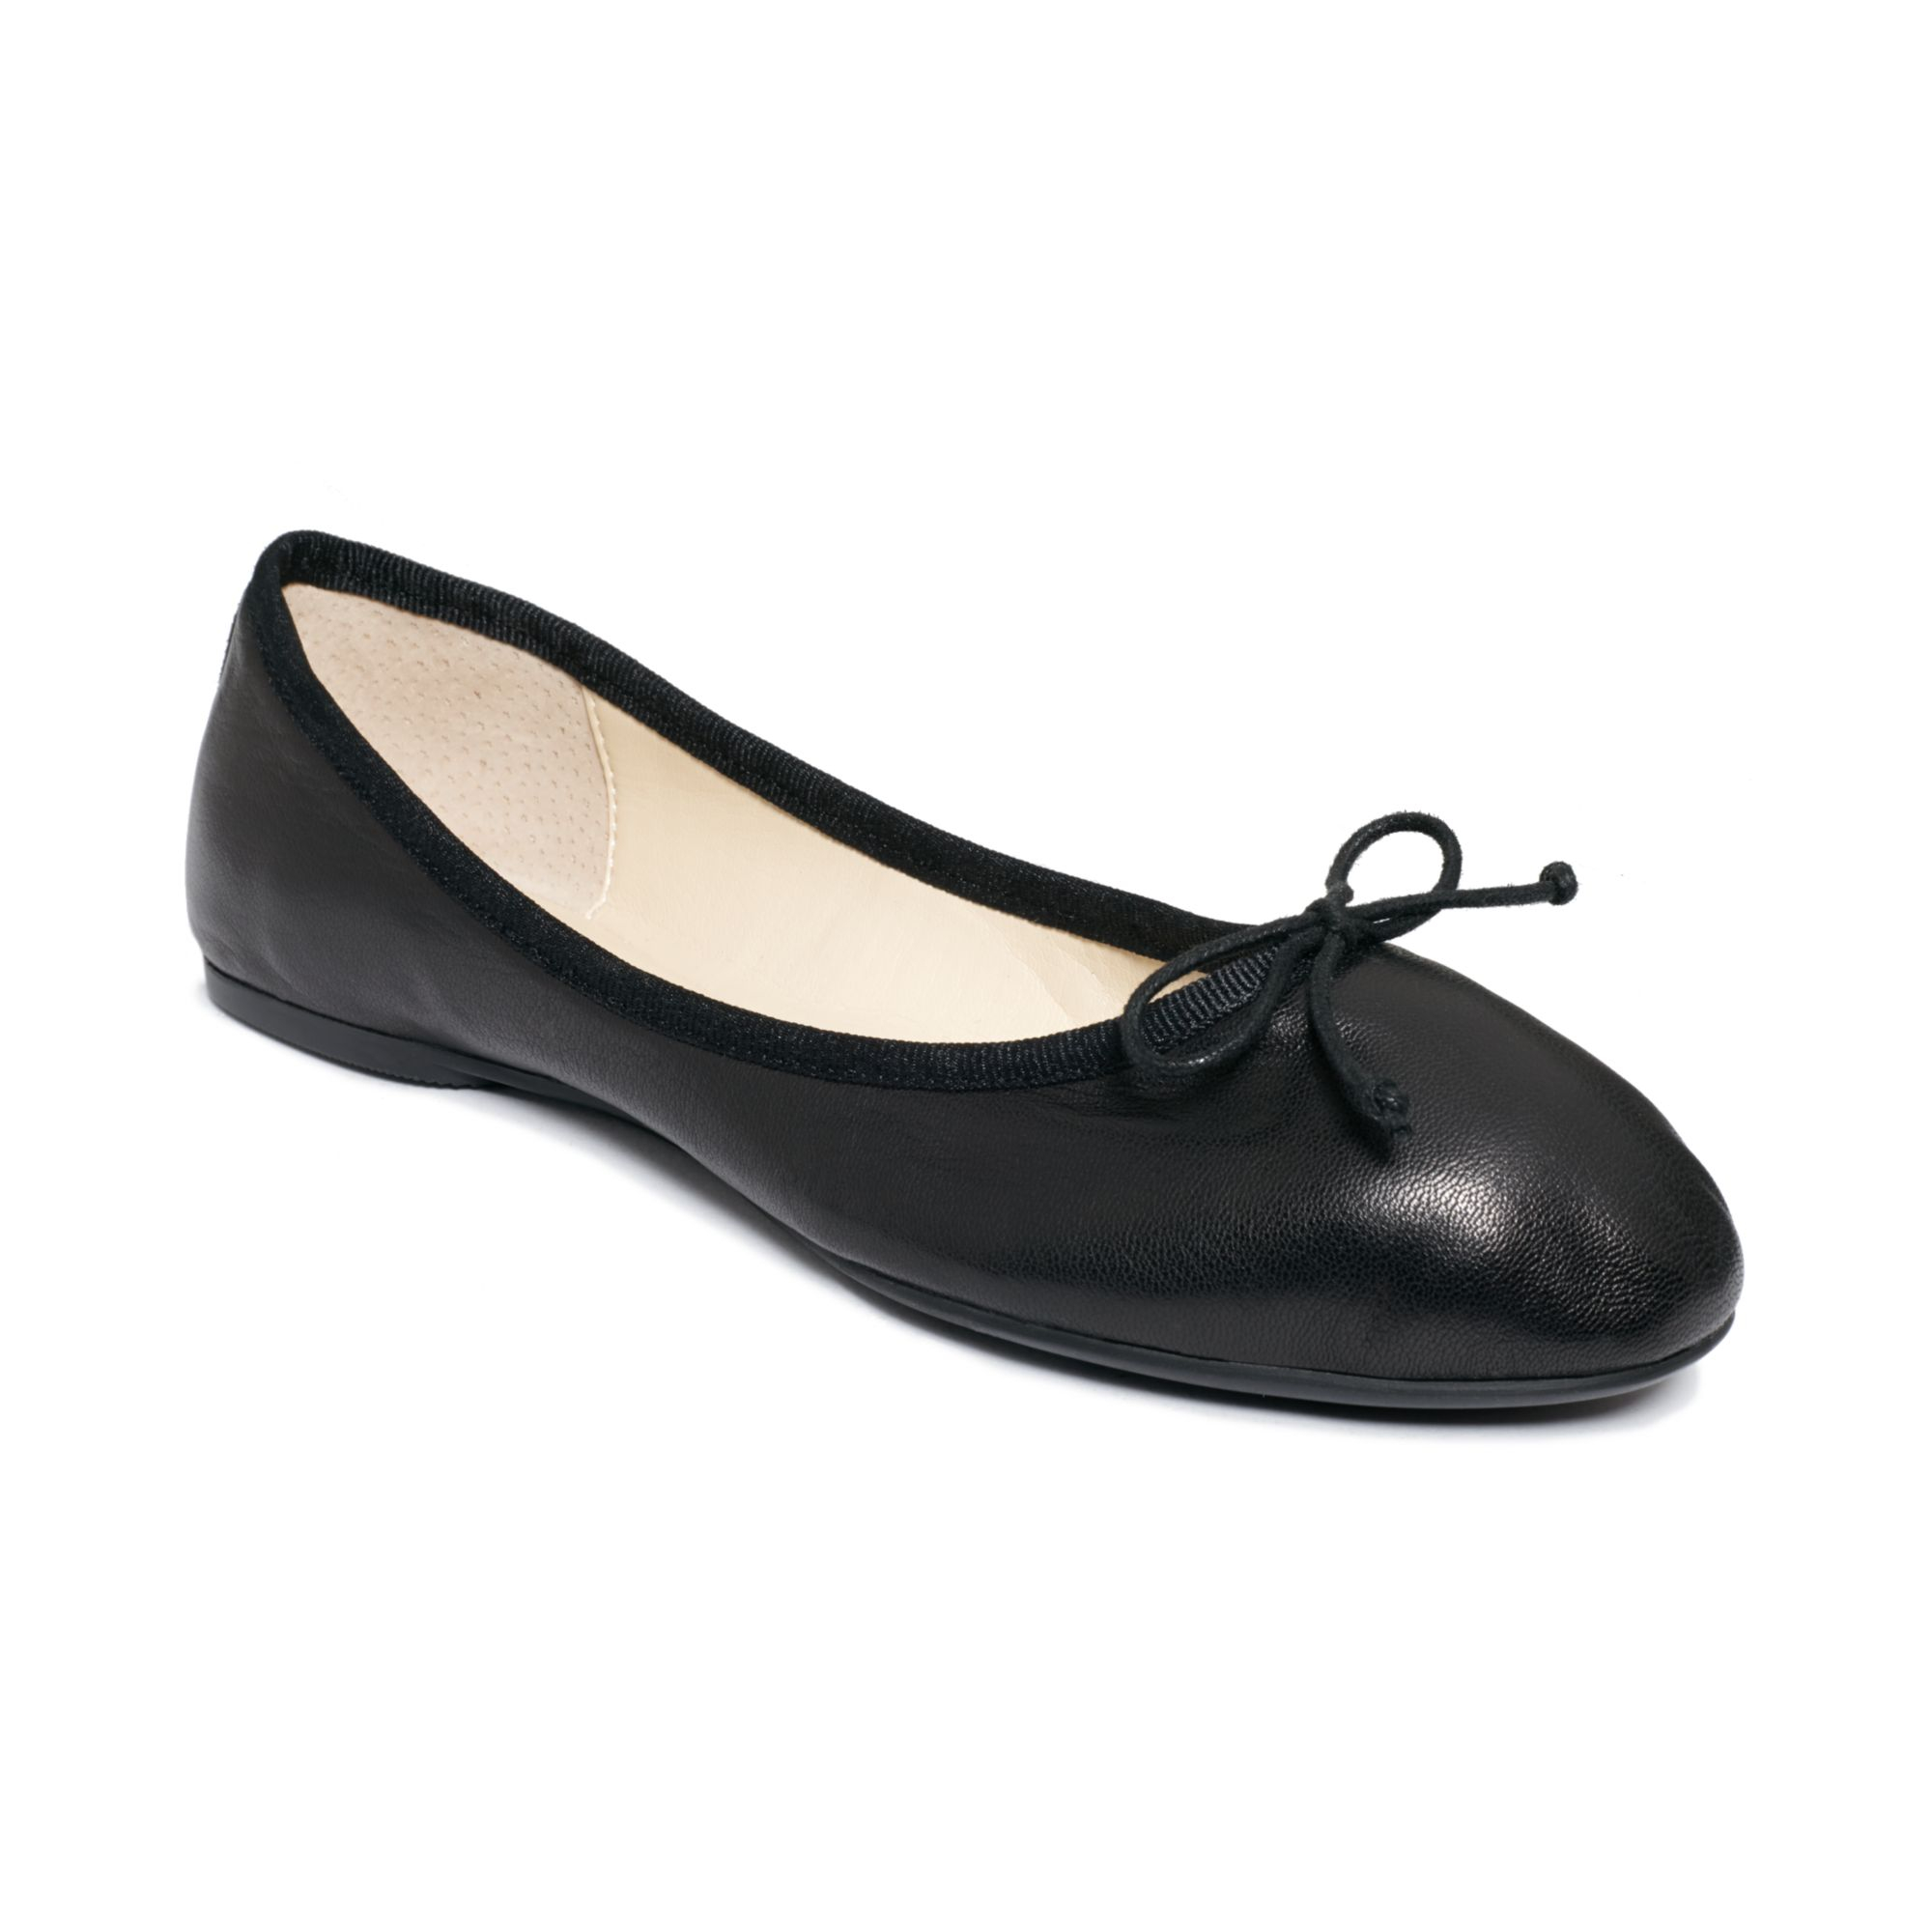 outlet online agreatvarietyofmodels new high Classica Ballet Flats